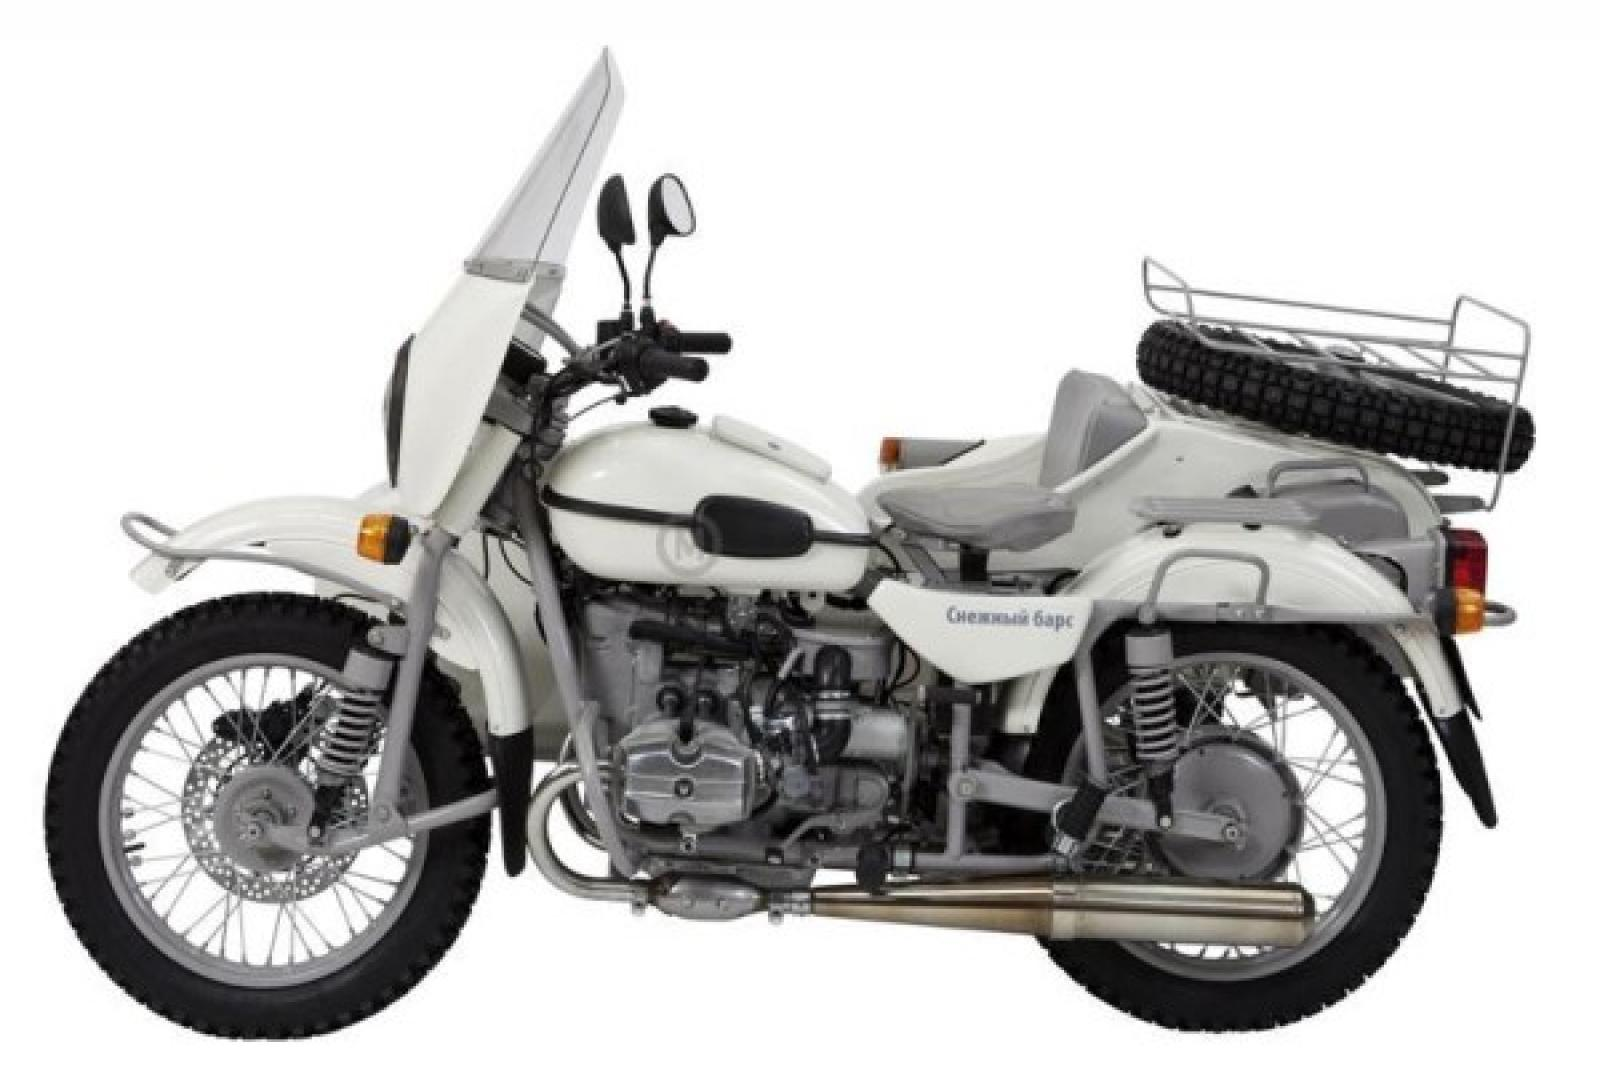 2011 Ural Snow Leopard Limited Edition #1